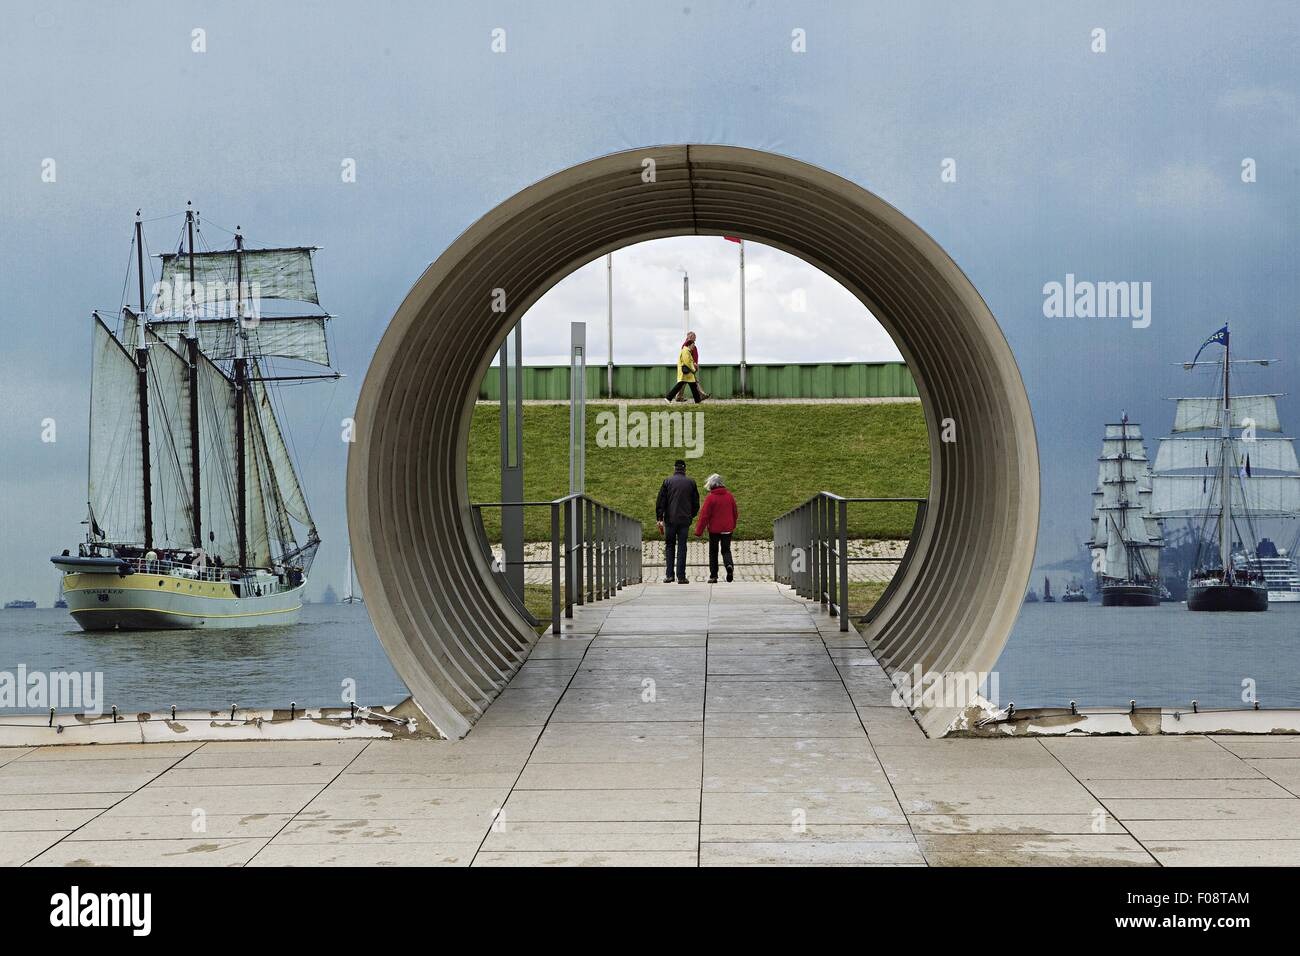 Rear view of person at Schiffahrtsmuseum passage, Bremerhaven, Germany Stock Photo